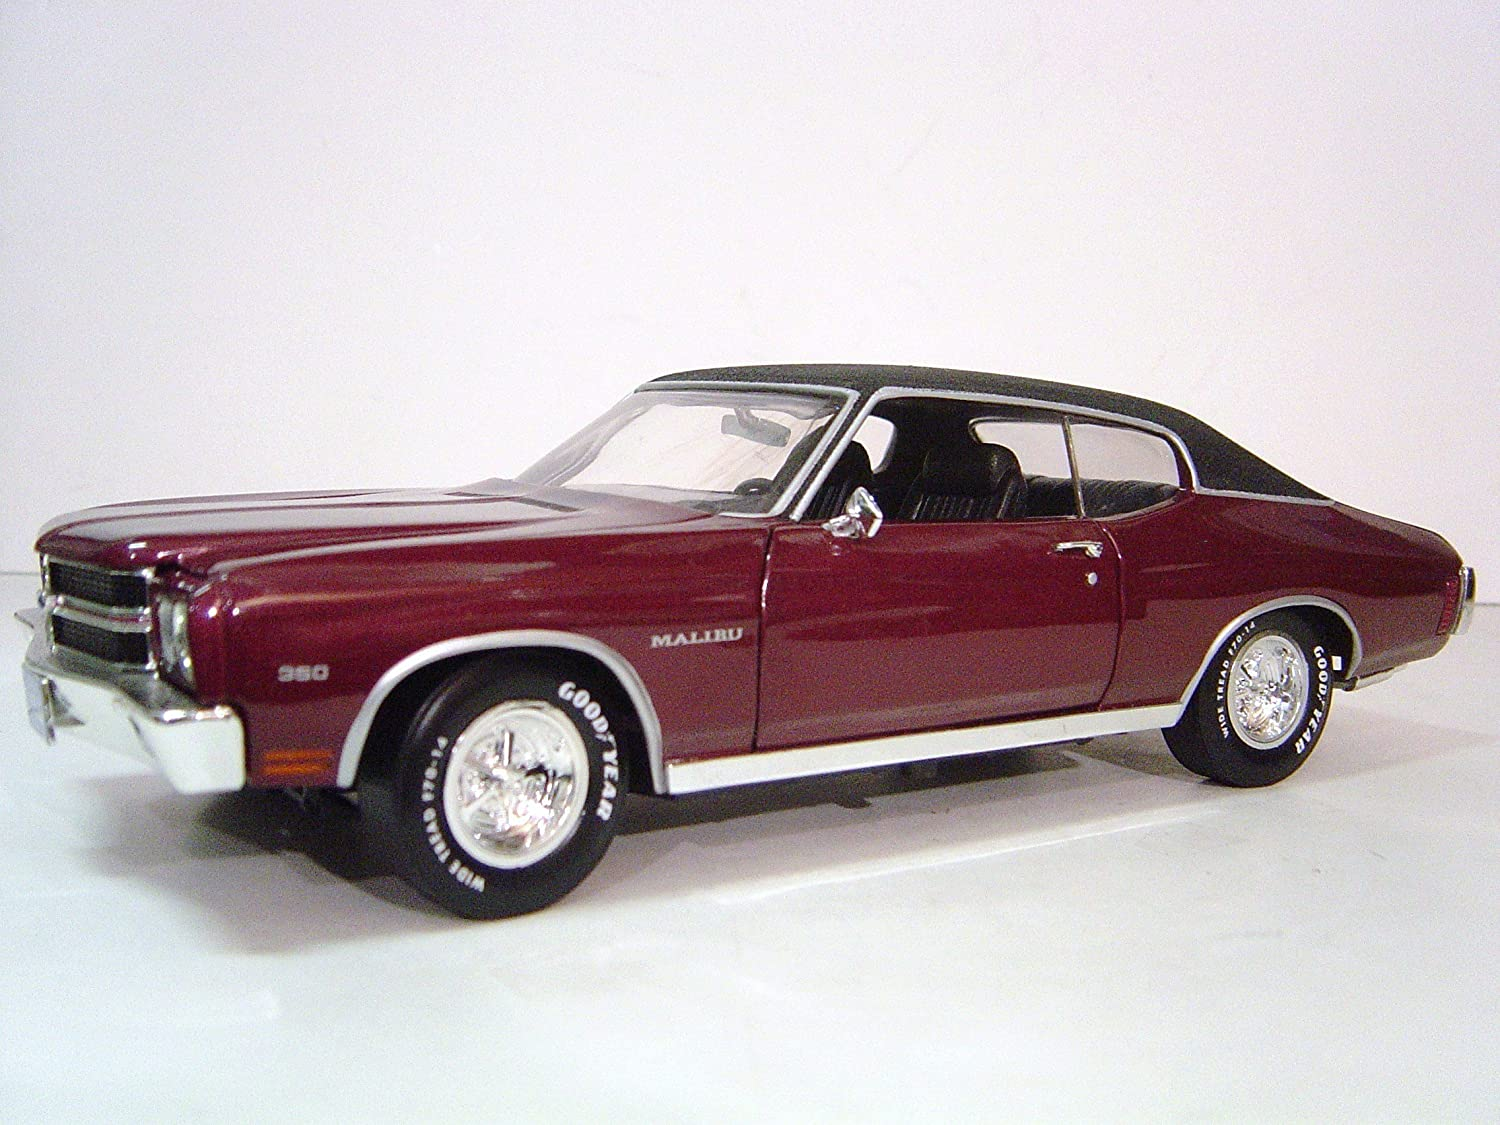 Chevy Chevelle Malibu 1970 1 18 Die Cast Toys Games 1966 Chevrolet Ss